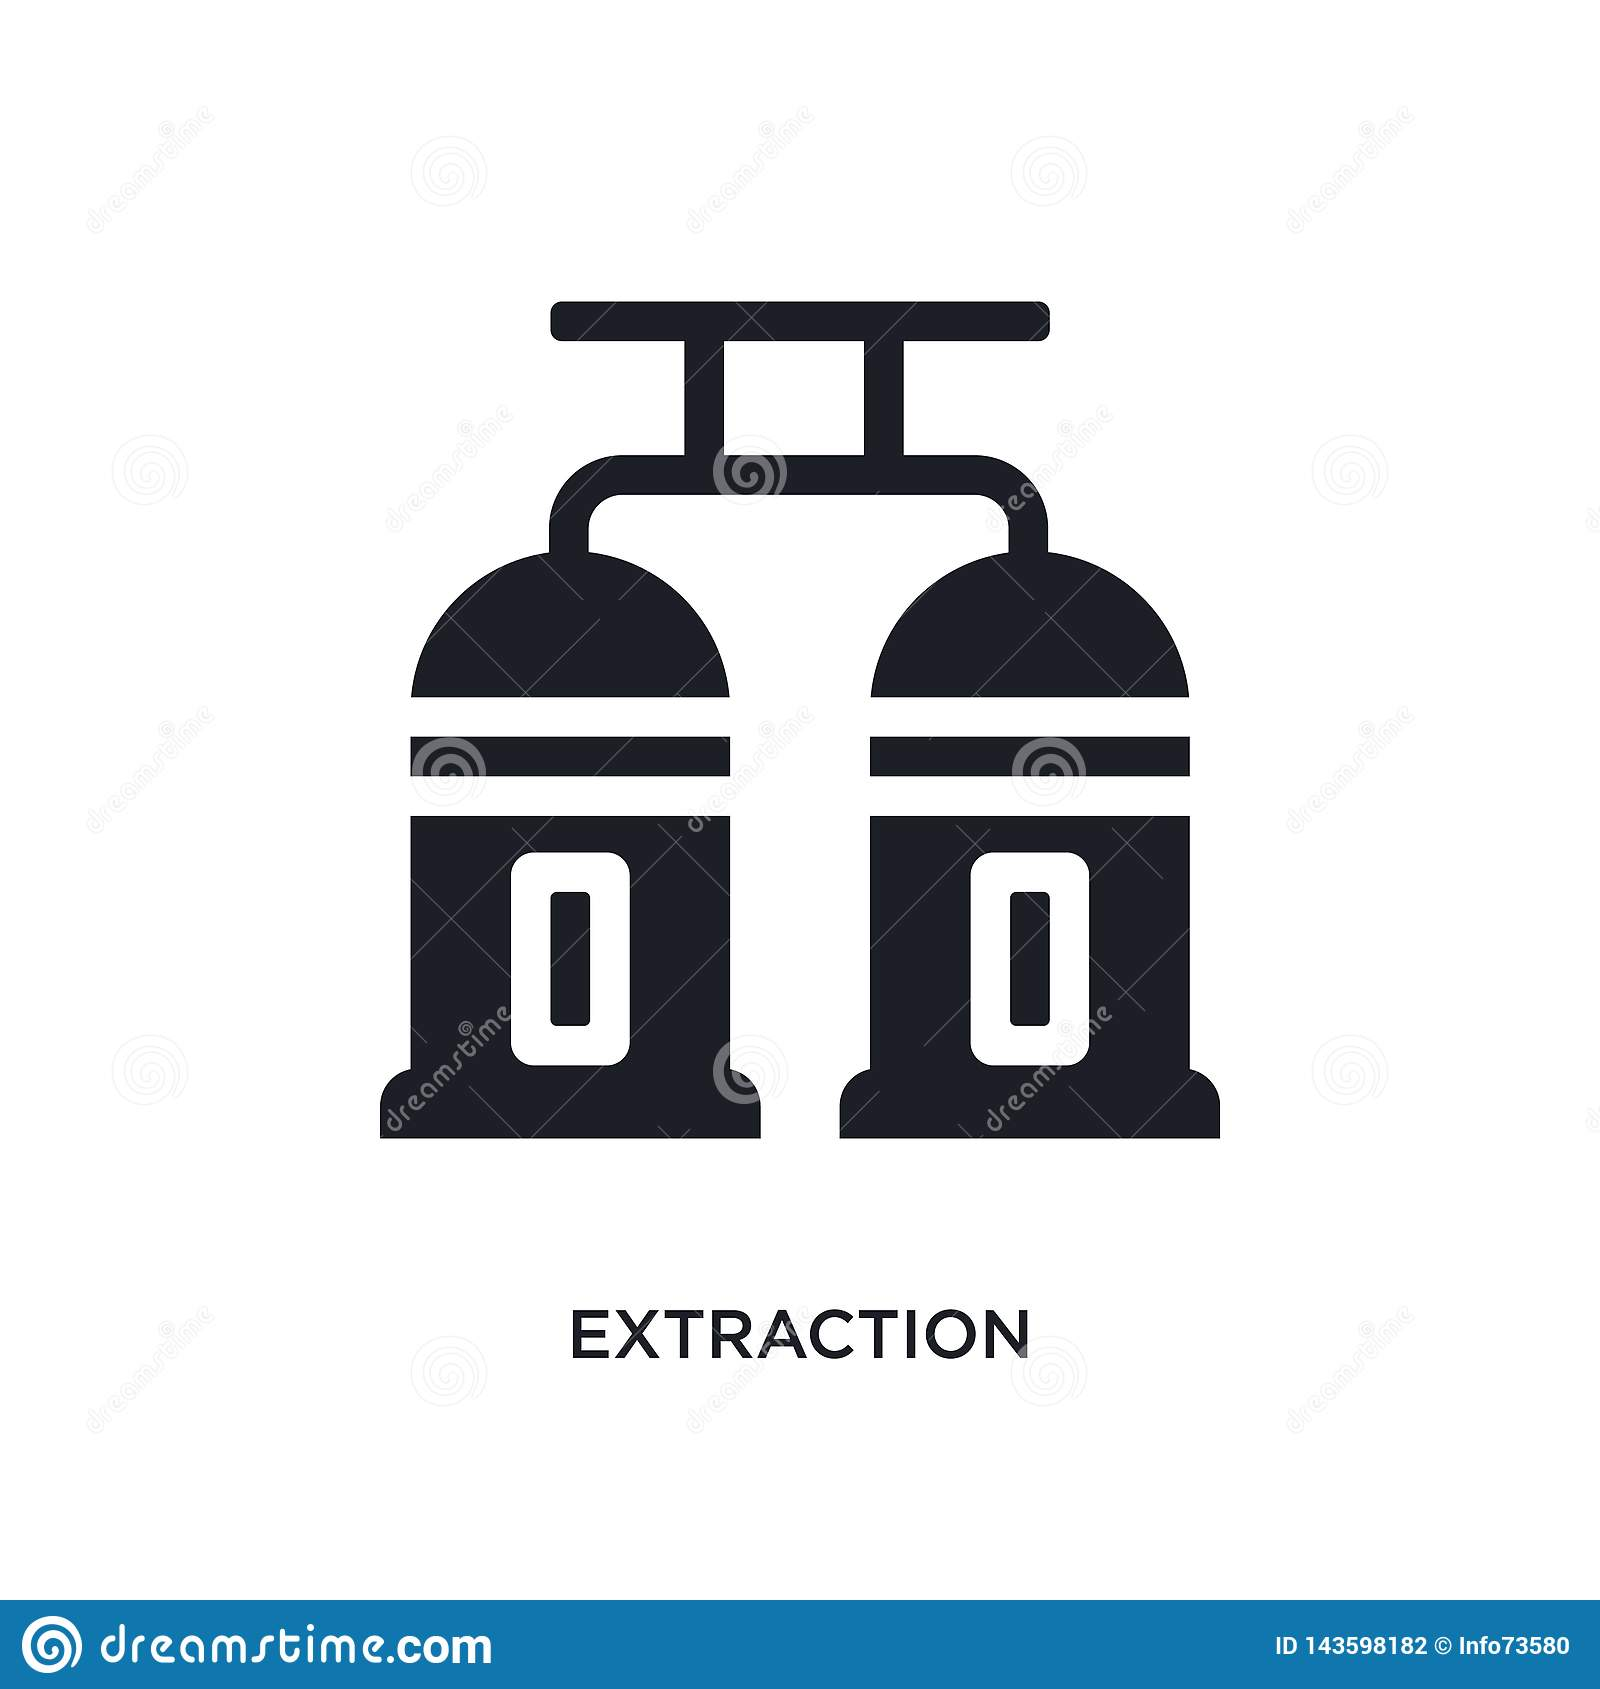 Element Extraction Stock Illustrations 2 313 Element Extraction Stock Illustrations Vectors Clipart Dreamstime